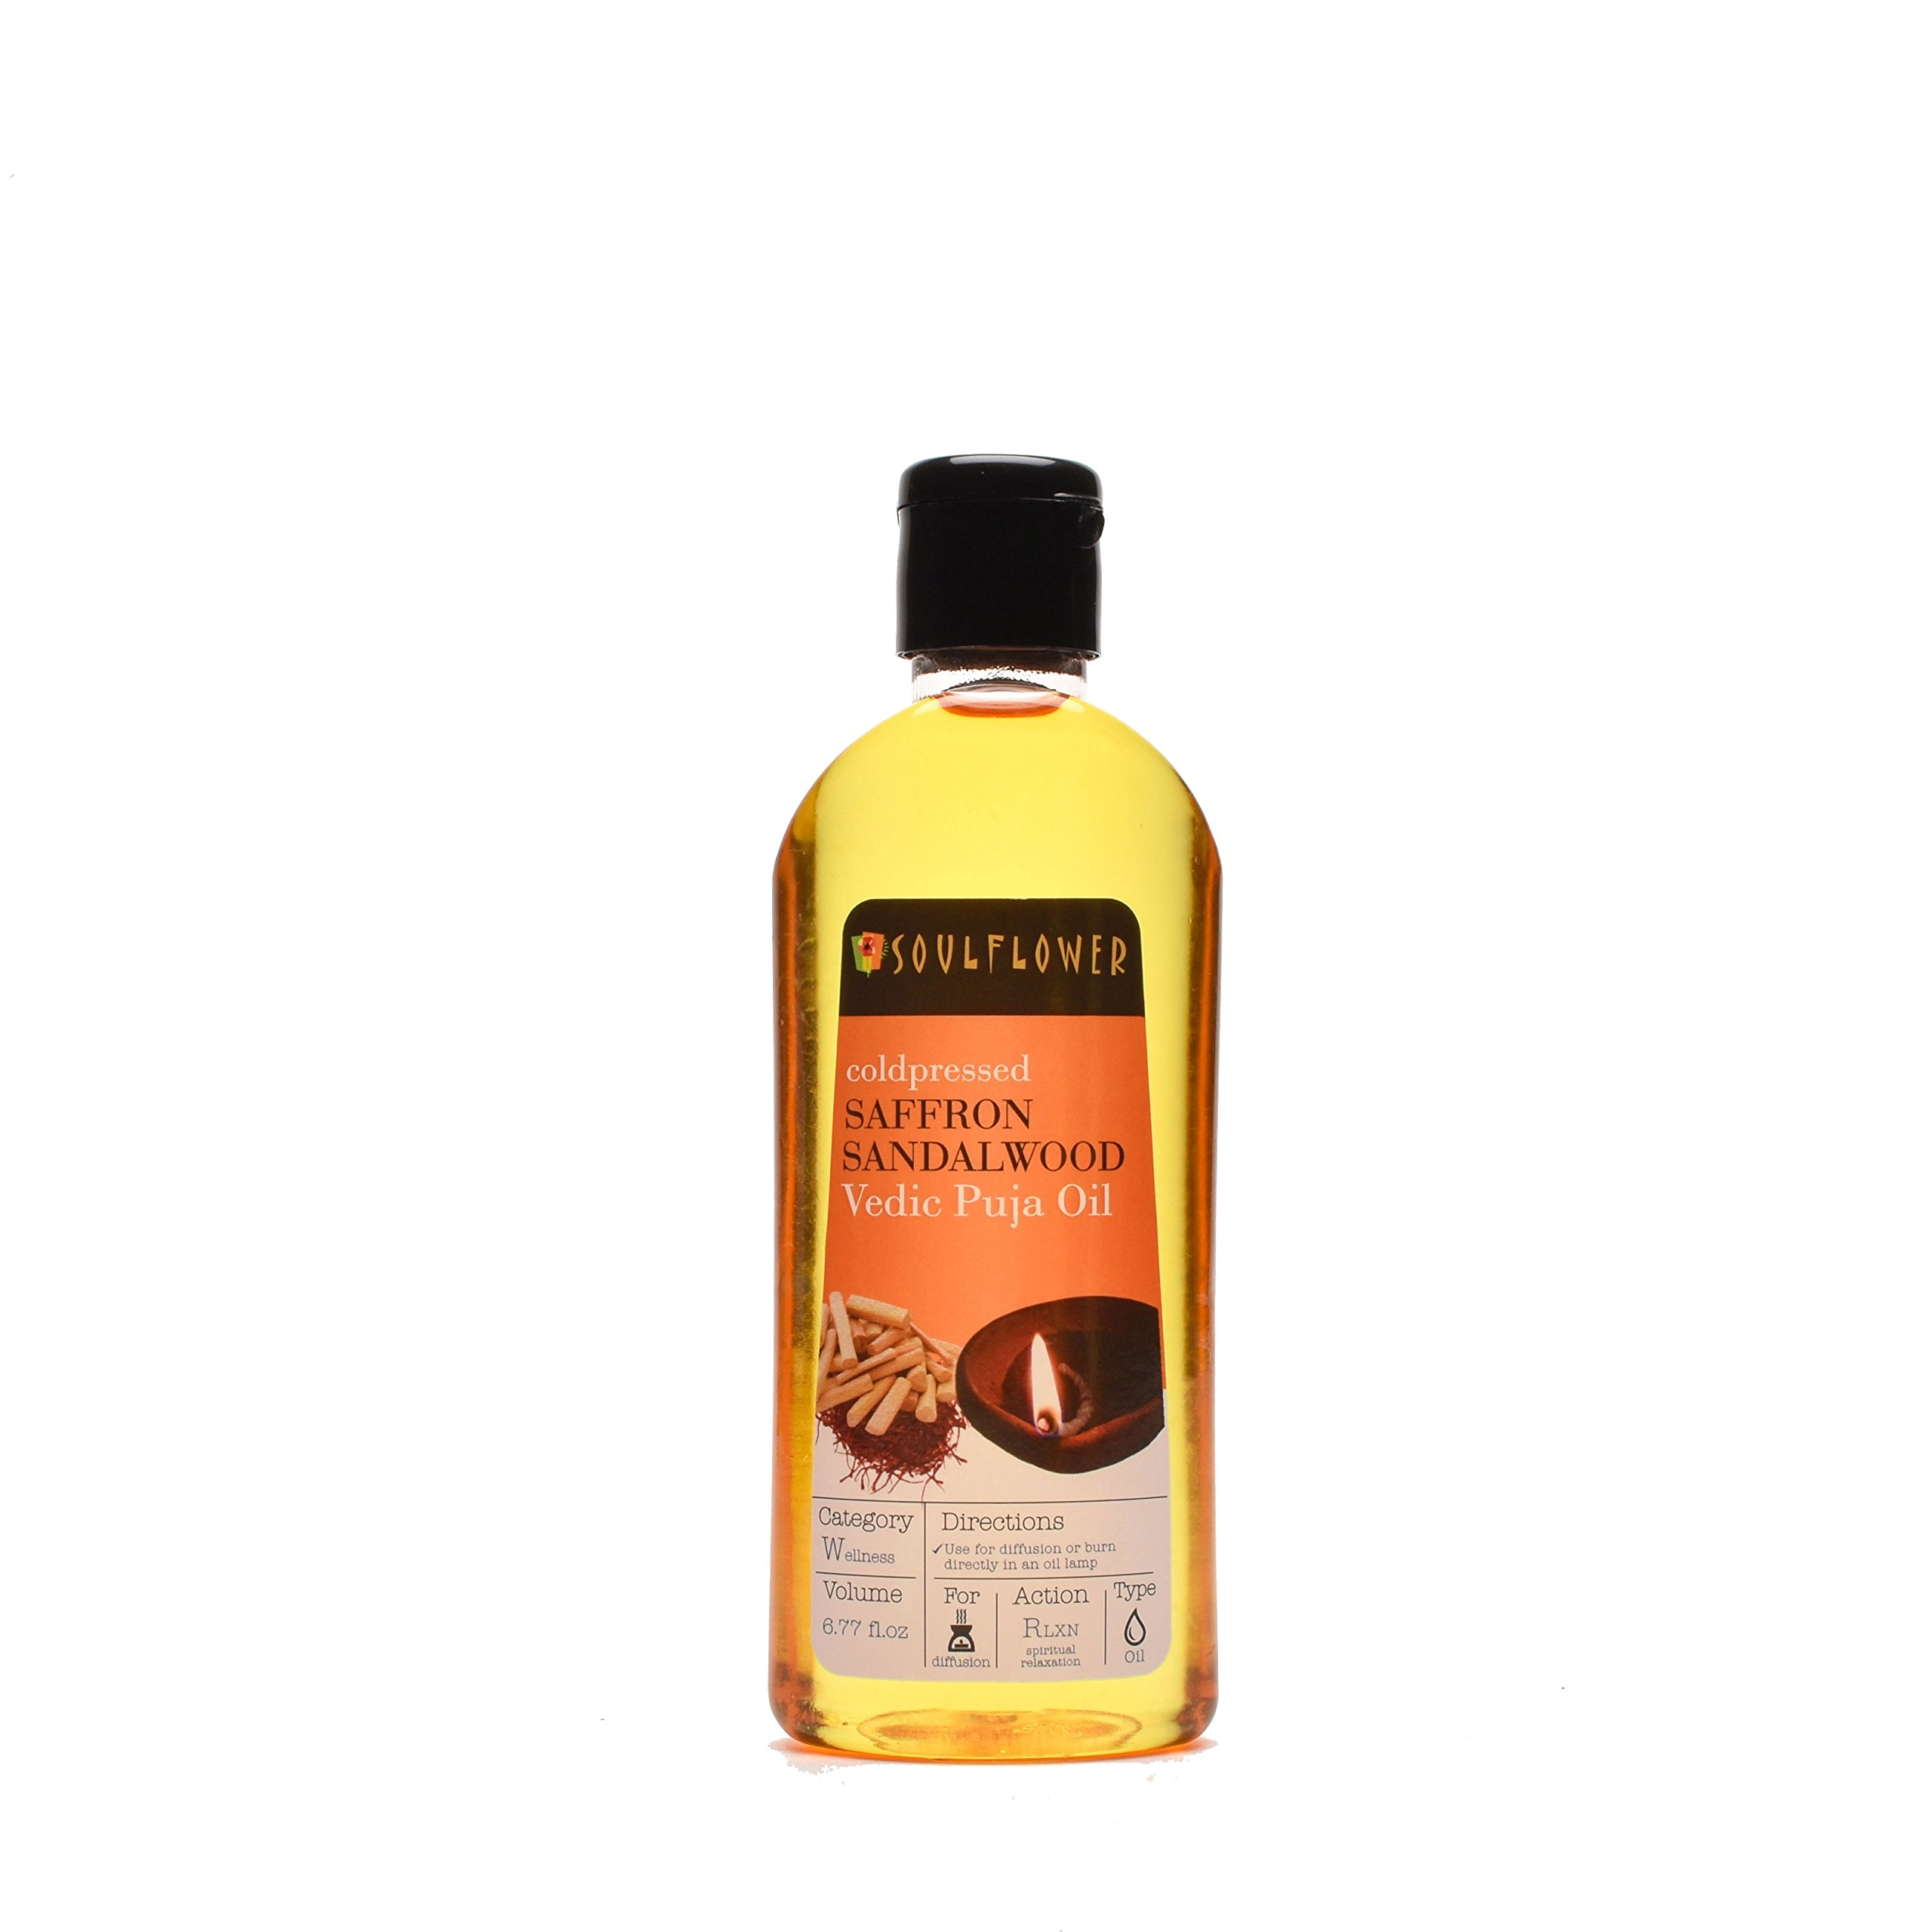 Saffron Sandalwood Vedic Puja Oil by Soulflower, 100% Pure and Natural Undiluted Ayurvedic Formulation,USFDA approved, Pure Sacred & Mystique for Altar & Lamps, 6.77 Fl.Oz, Vegan & Organic